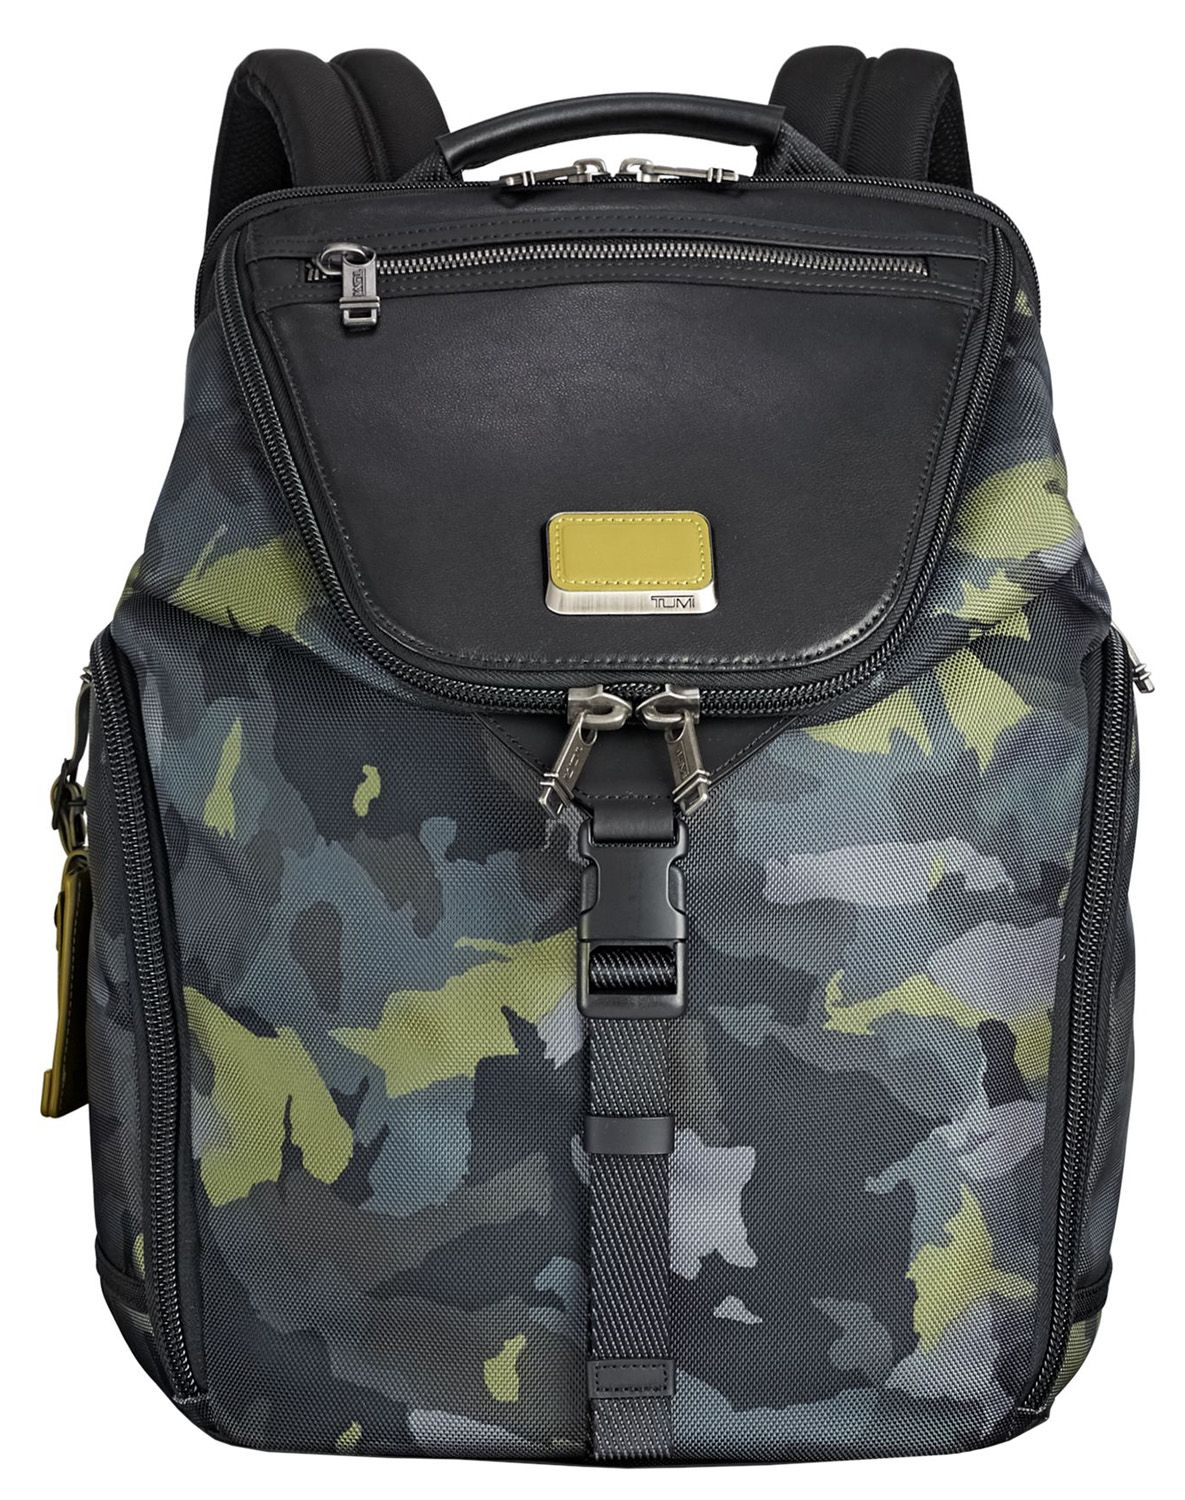 Tumi Alpha Bravo Green Camo Willow Backpack - 103707T619